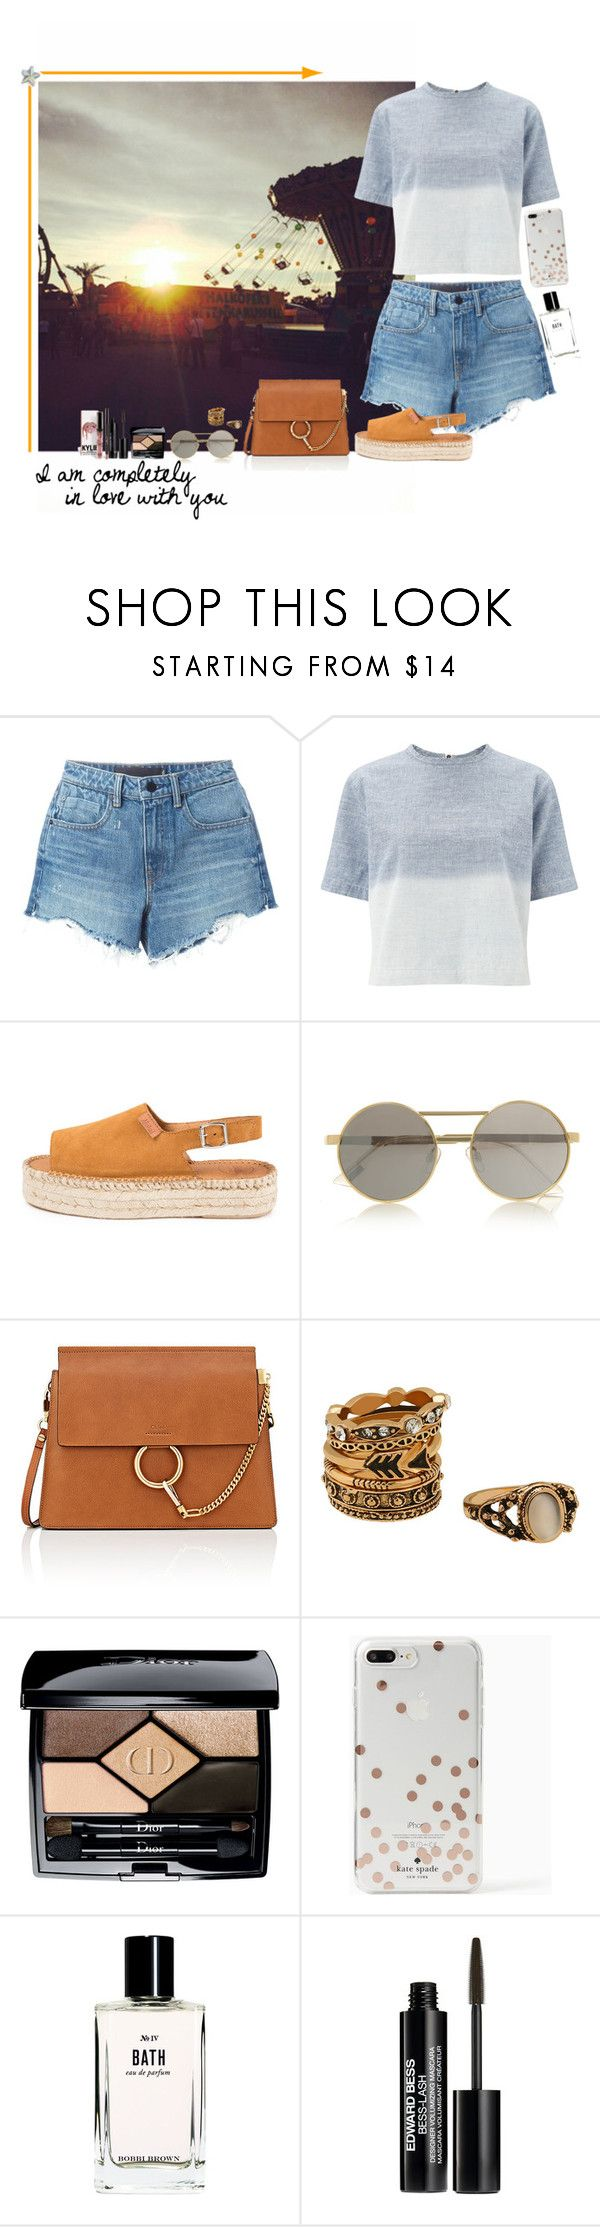 """""""VIII. Local Fair with him"""" by miriamofficial5 ❤ liked on Polyvore featuring Alexander Wang, rag & bone, Le Specs, Chloé, Christian Dior, Kate Spade, Bobbi Brown Cosmetics and Edward Bess"""